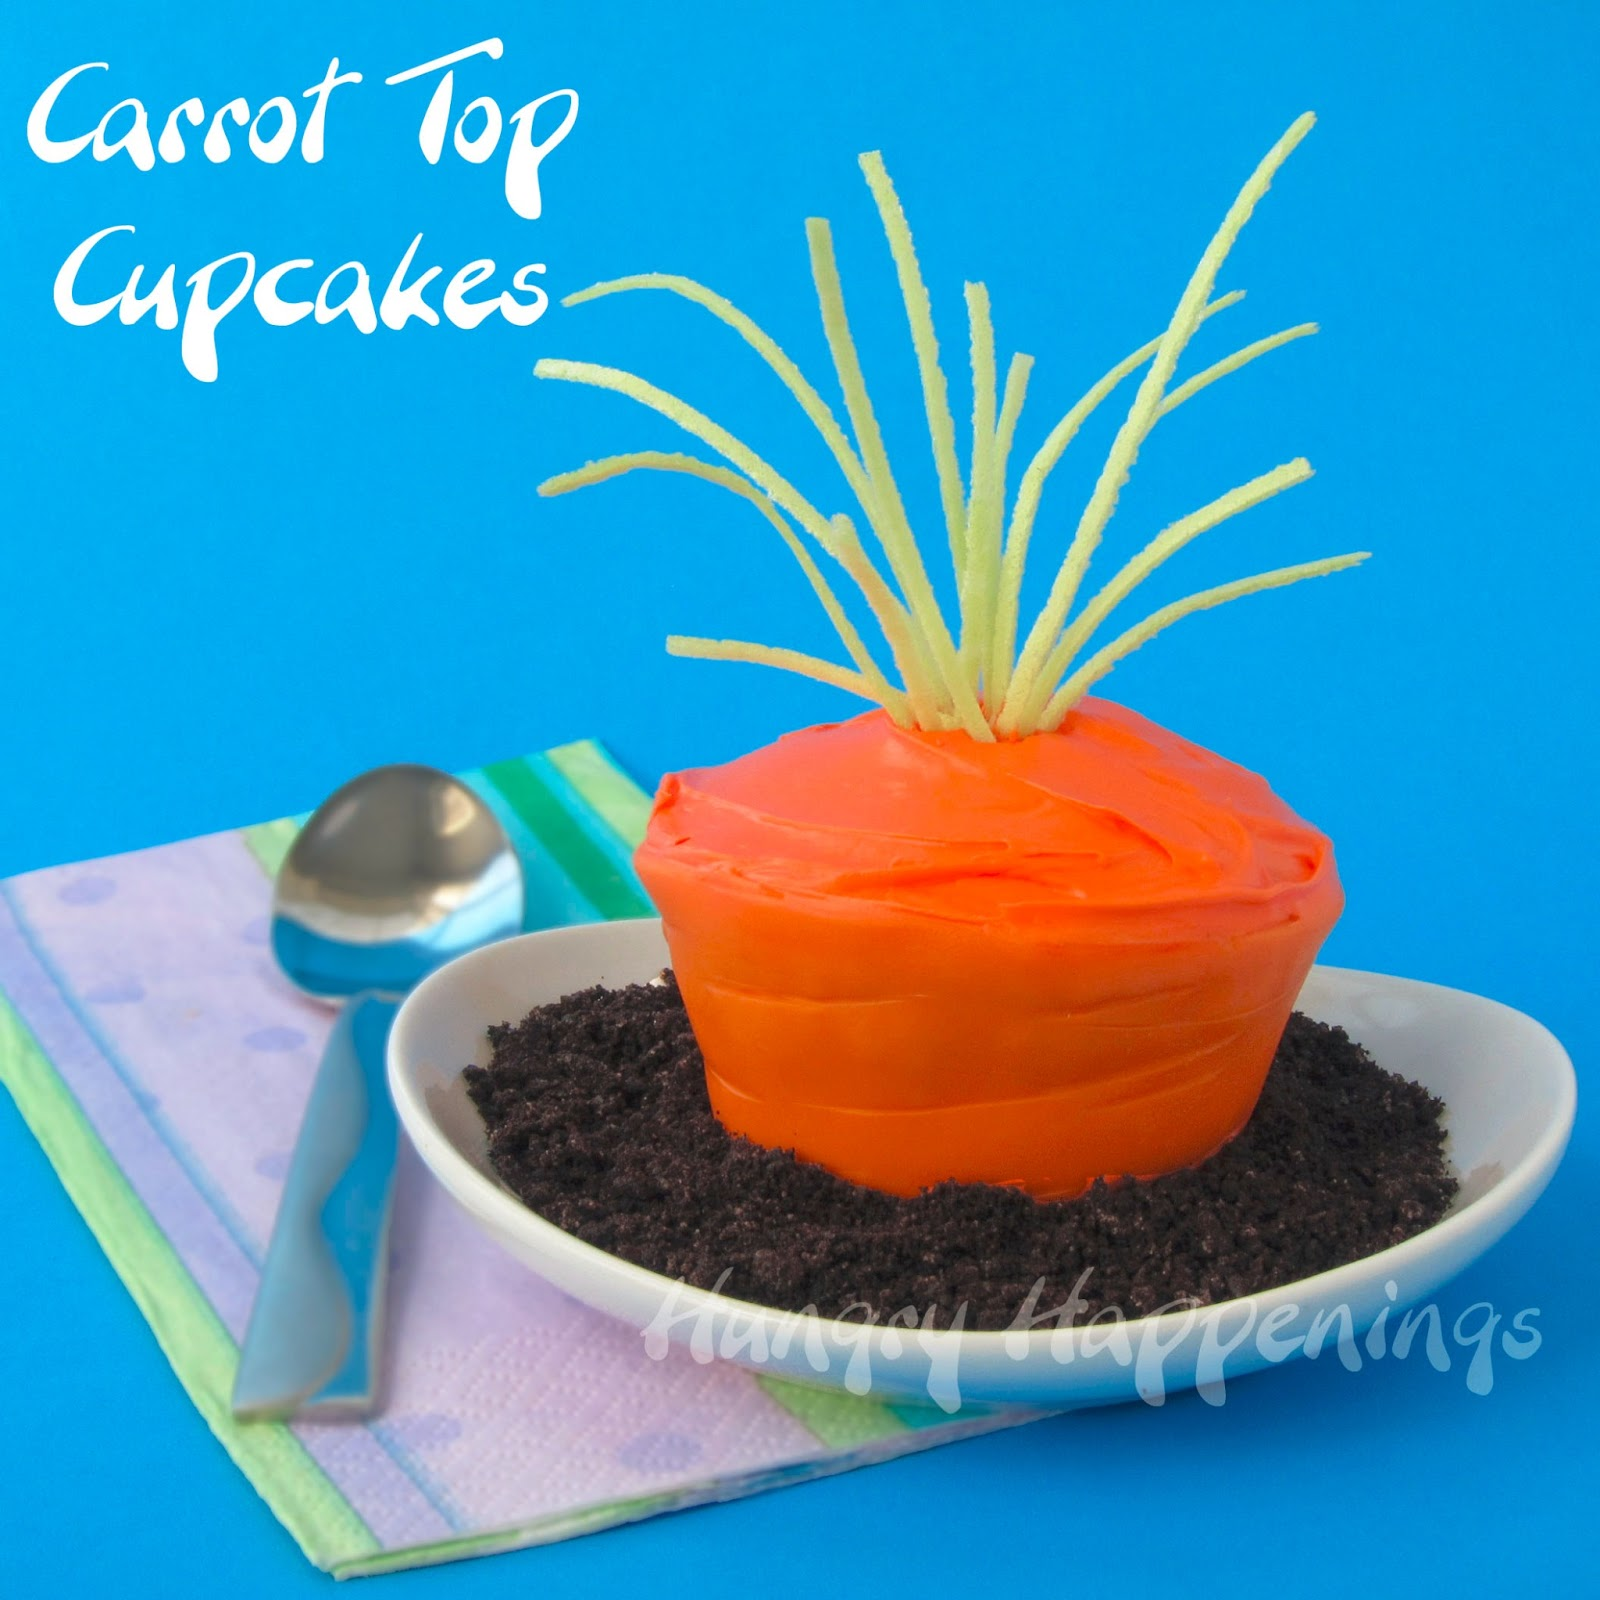 Easter Carrot Top Cupcakes with Edible Cupcake Wrappers